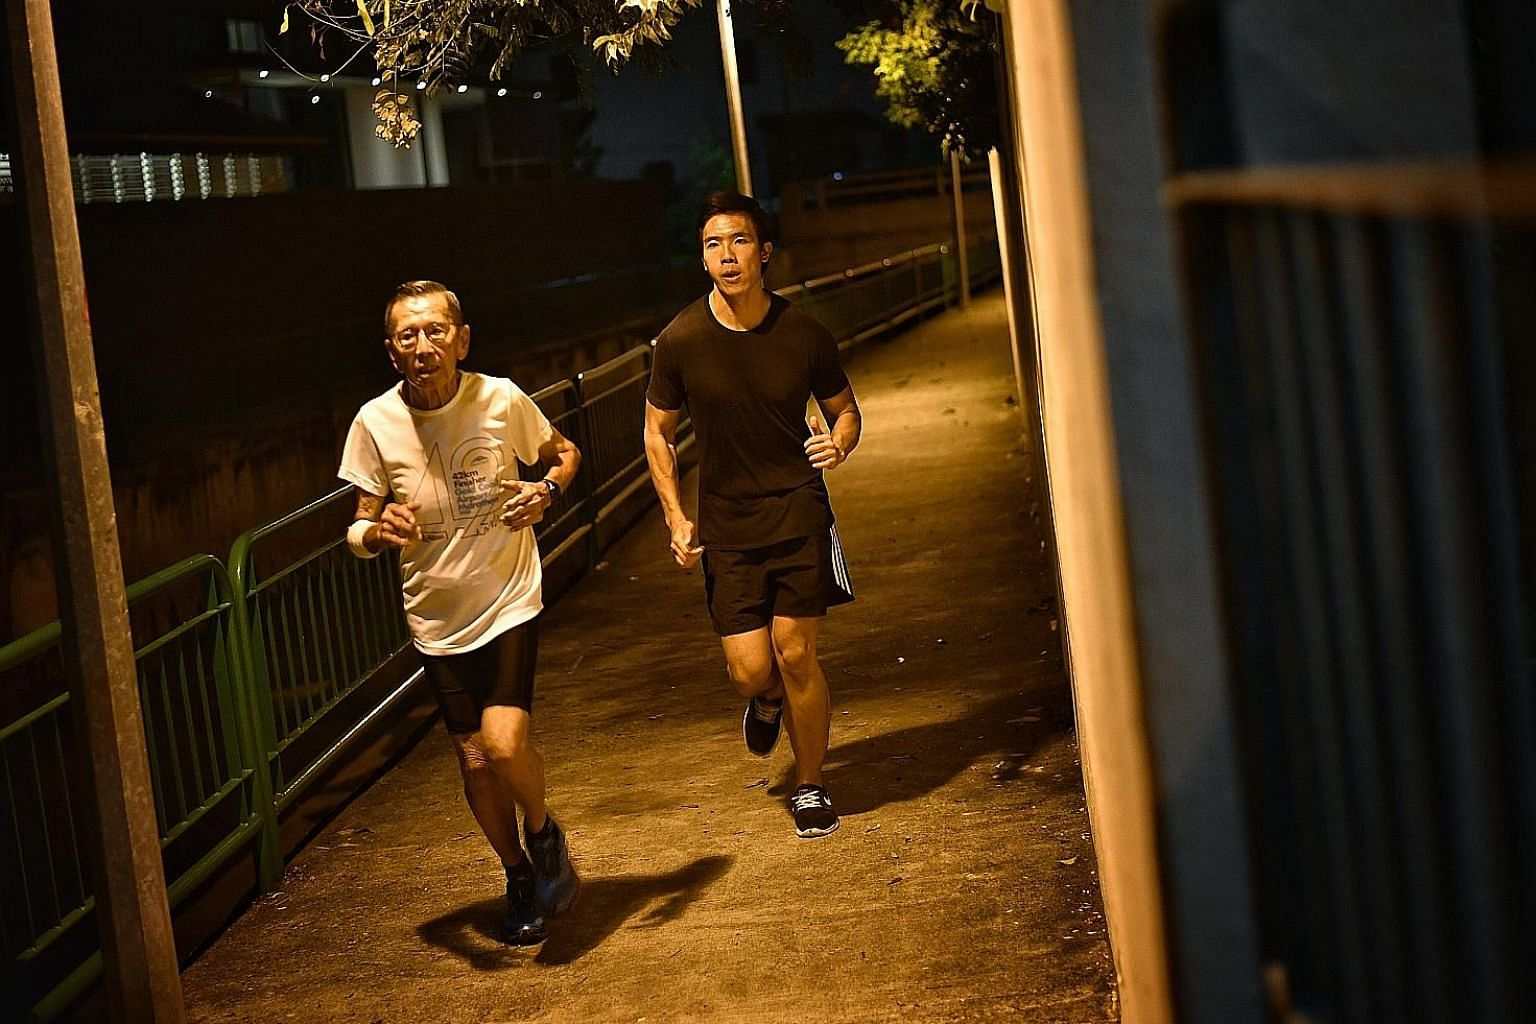 The writer Justin Kor trying to keep pace with his grandfather, Kor Hong Fatt, while training for next month's Standard Chartered Singapore Marathon.